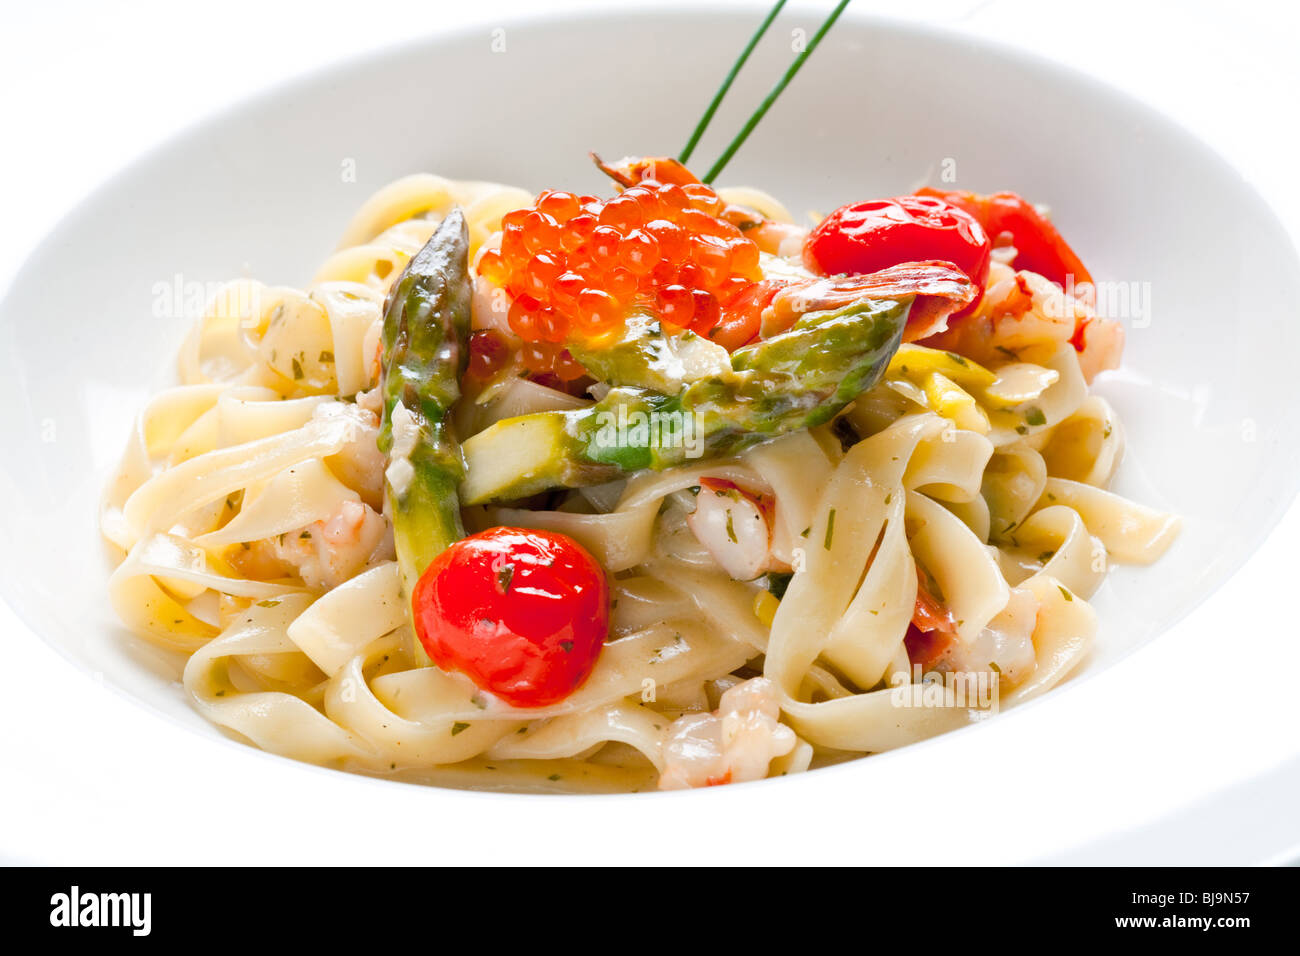 Italian noodles with red caviar and asparagus - Stock Image